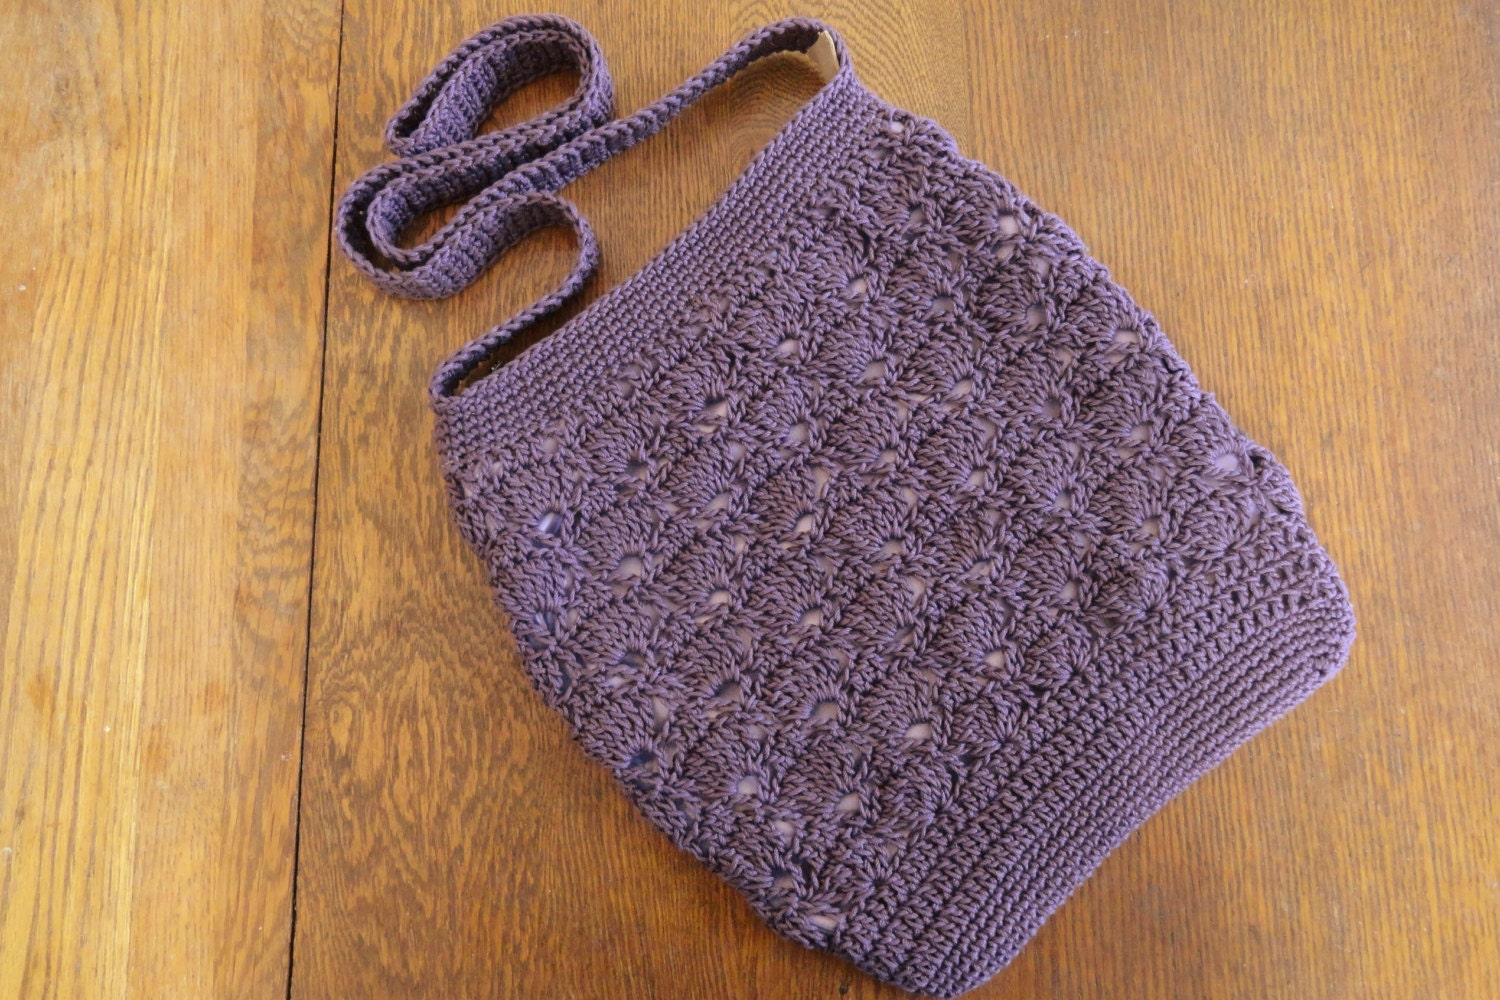 Crochet Crossbody Bag Pattern : Crochet Crossbody Bag Purse Mauve Purple by kathyscrochetcloset